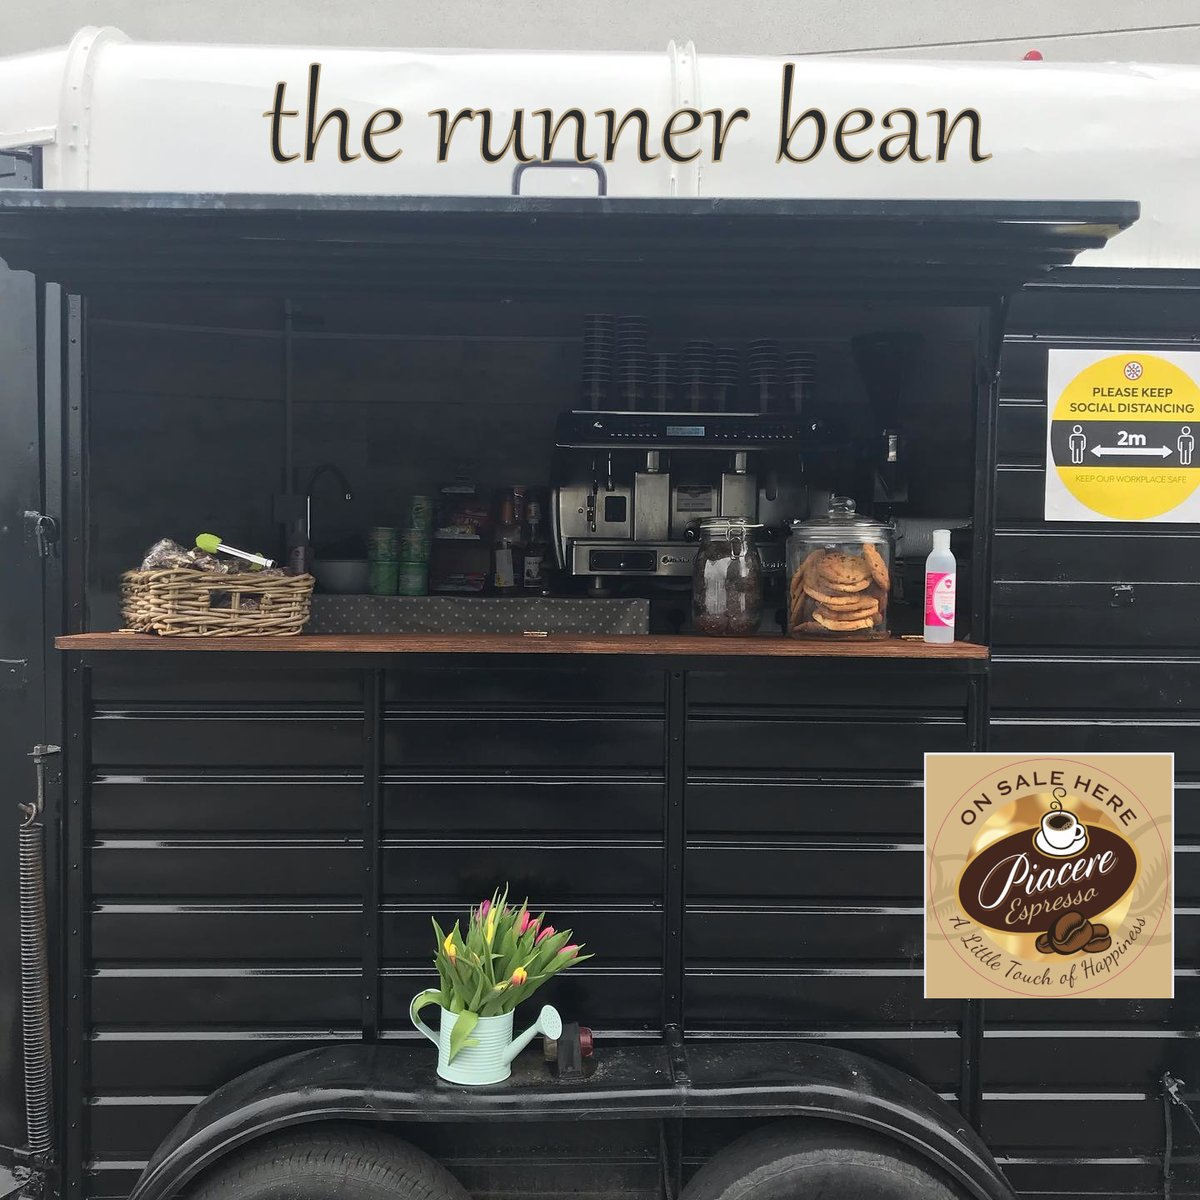 Well done to Louise and team for keeping the flag flying in these trying times up there in Thurles. More power to you lads bringing the coffee to the people. #coffee #coffeetime #coffeelover #cafe #coffeeshop #coffeeaddict #espresso #food #barista #thurles @runnerbeangirl